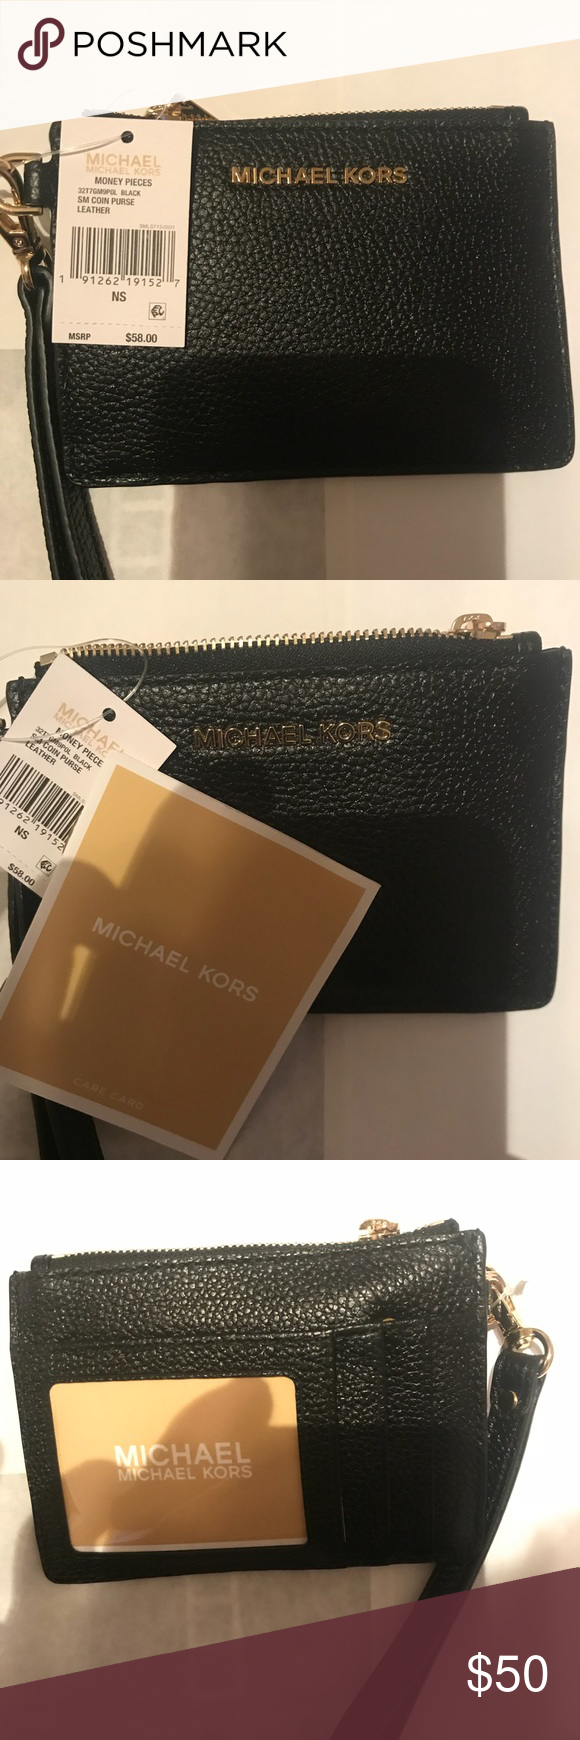 227623e88625 🌹Michael Kors Small Mercer Leather Coin Purse🌹 Michael Kors Small Mercer  Leather Ruffled Coin Purse Bags Clutches   Wristlets